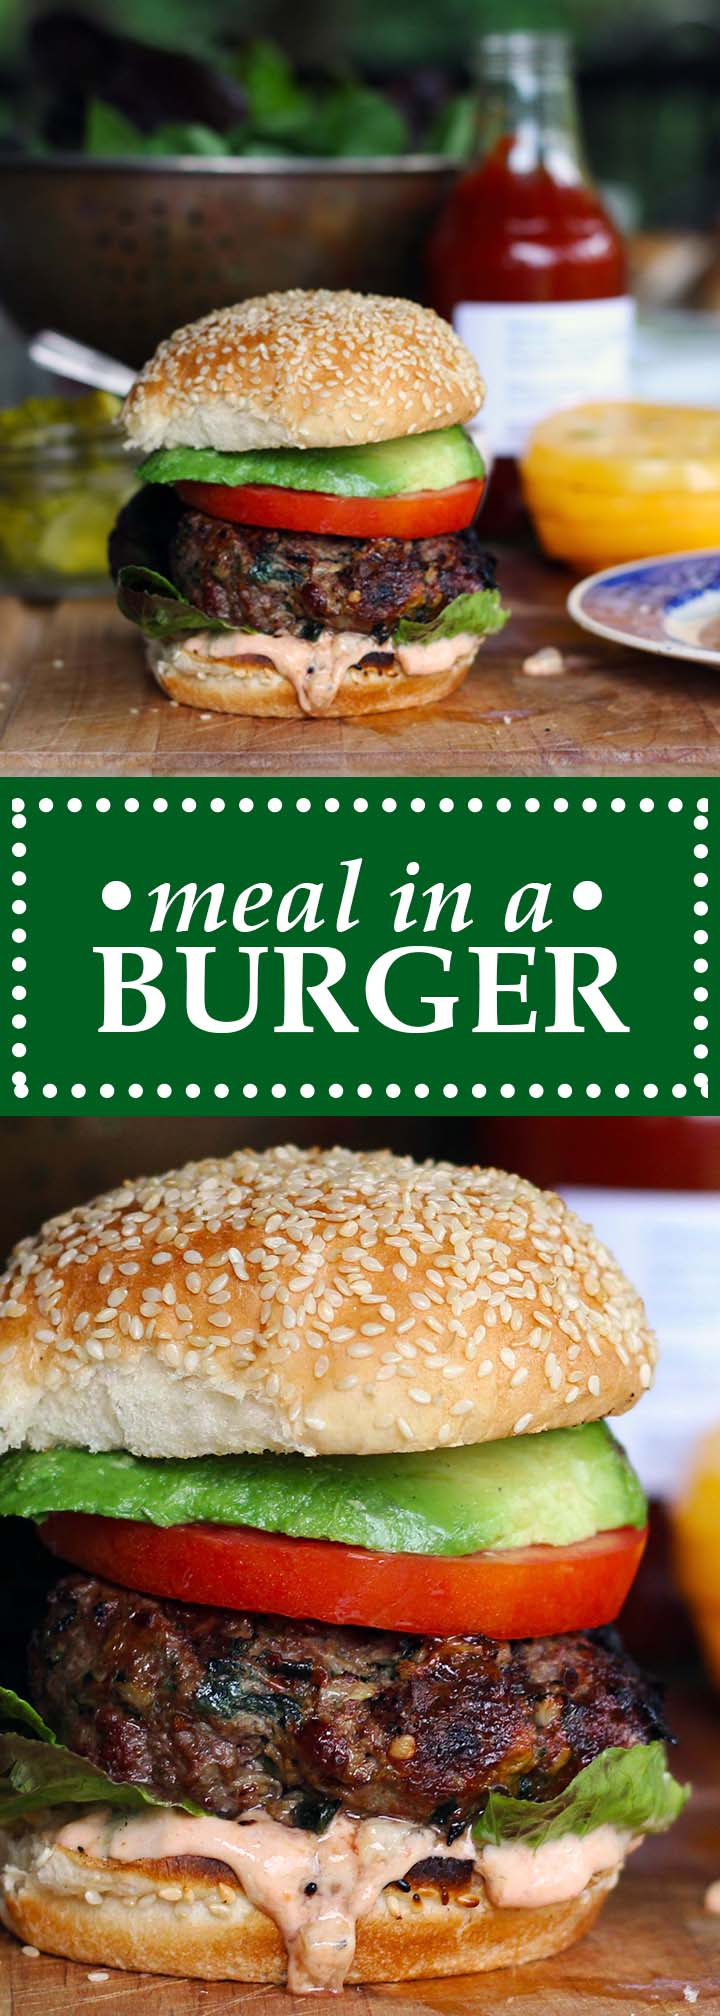 Meal in a burger | www.thetableofcontents.co